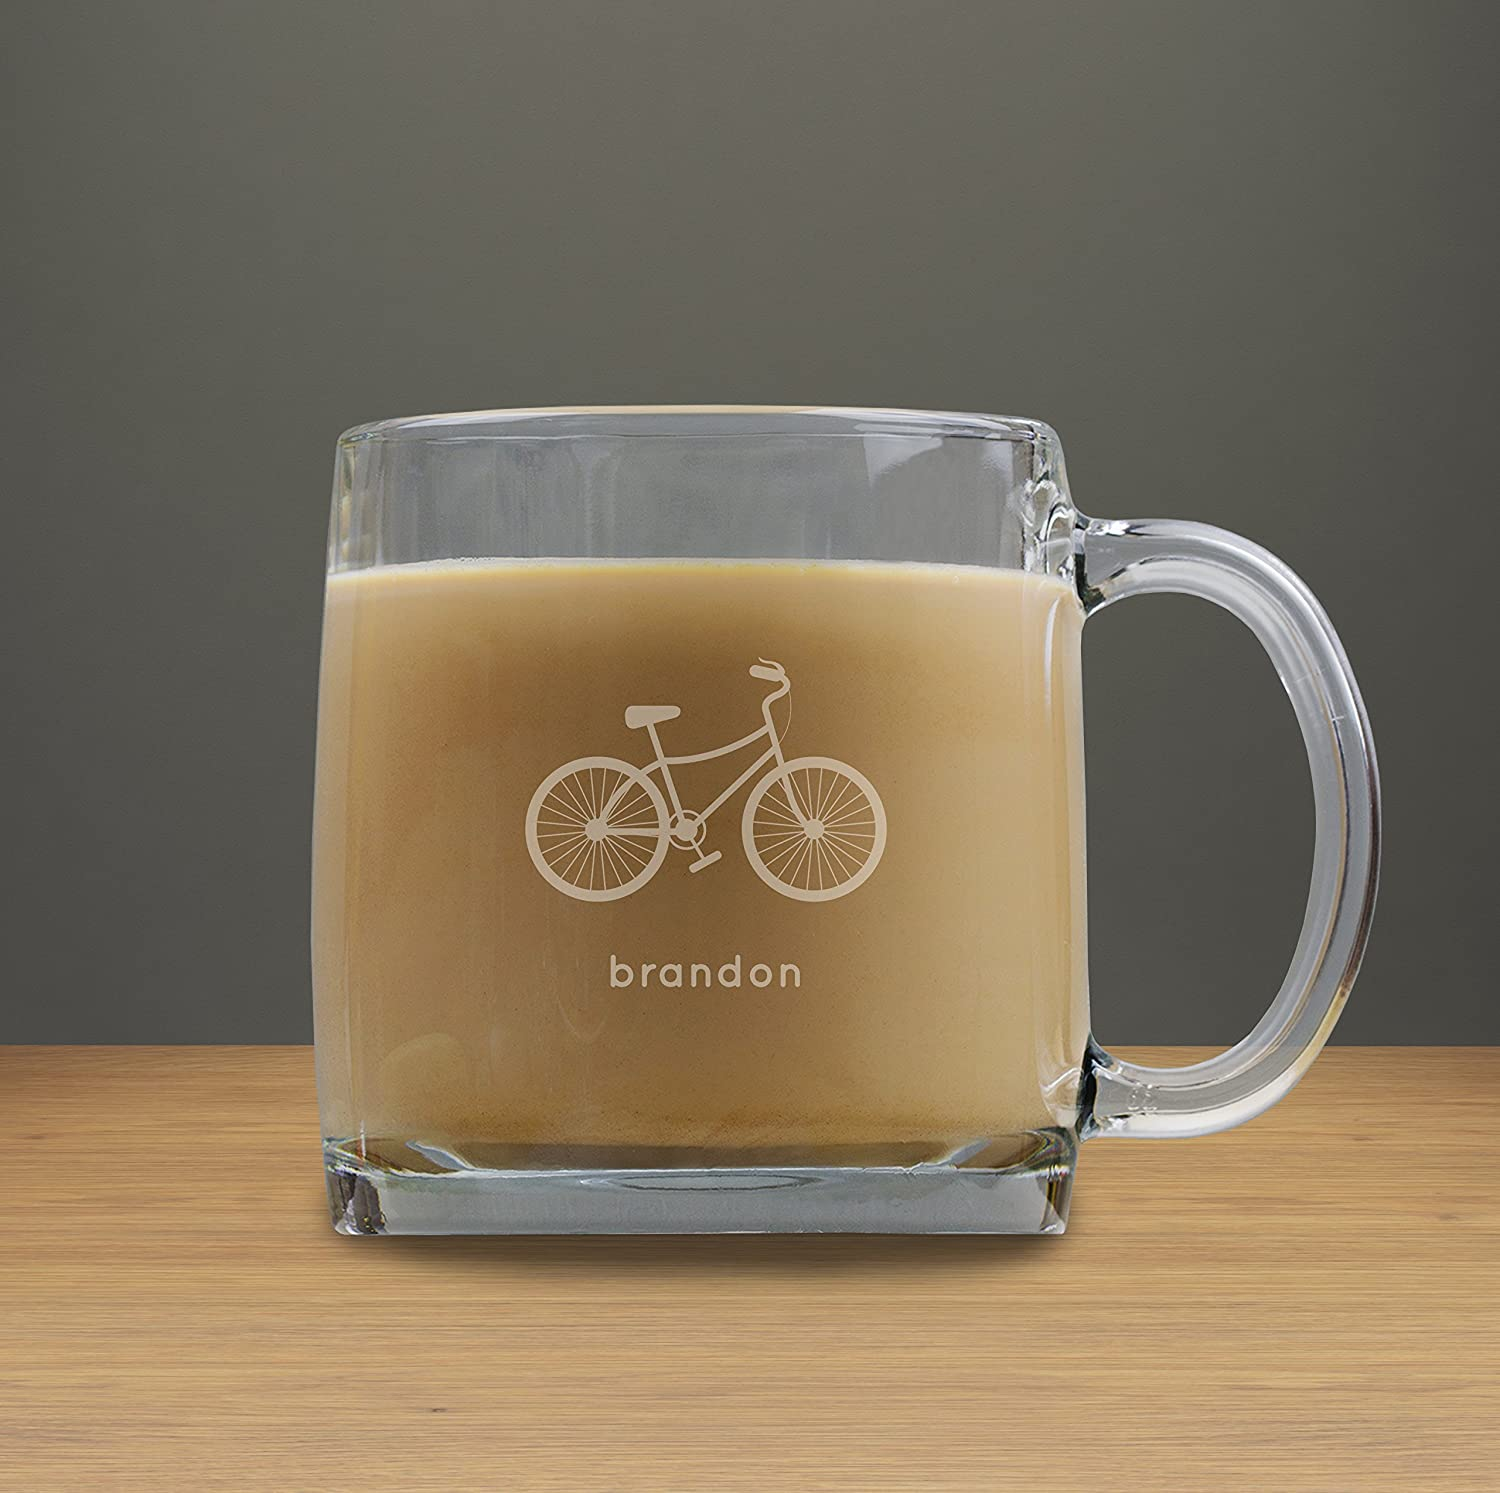 Personalized Bicycle Coffee Cup, 13 oz Coffee Glass Cup, Engraved Gifts, Gifts for Mom and Dad,Gift for Coworker